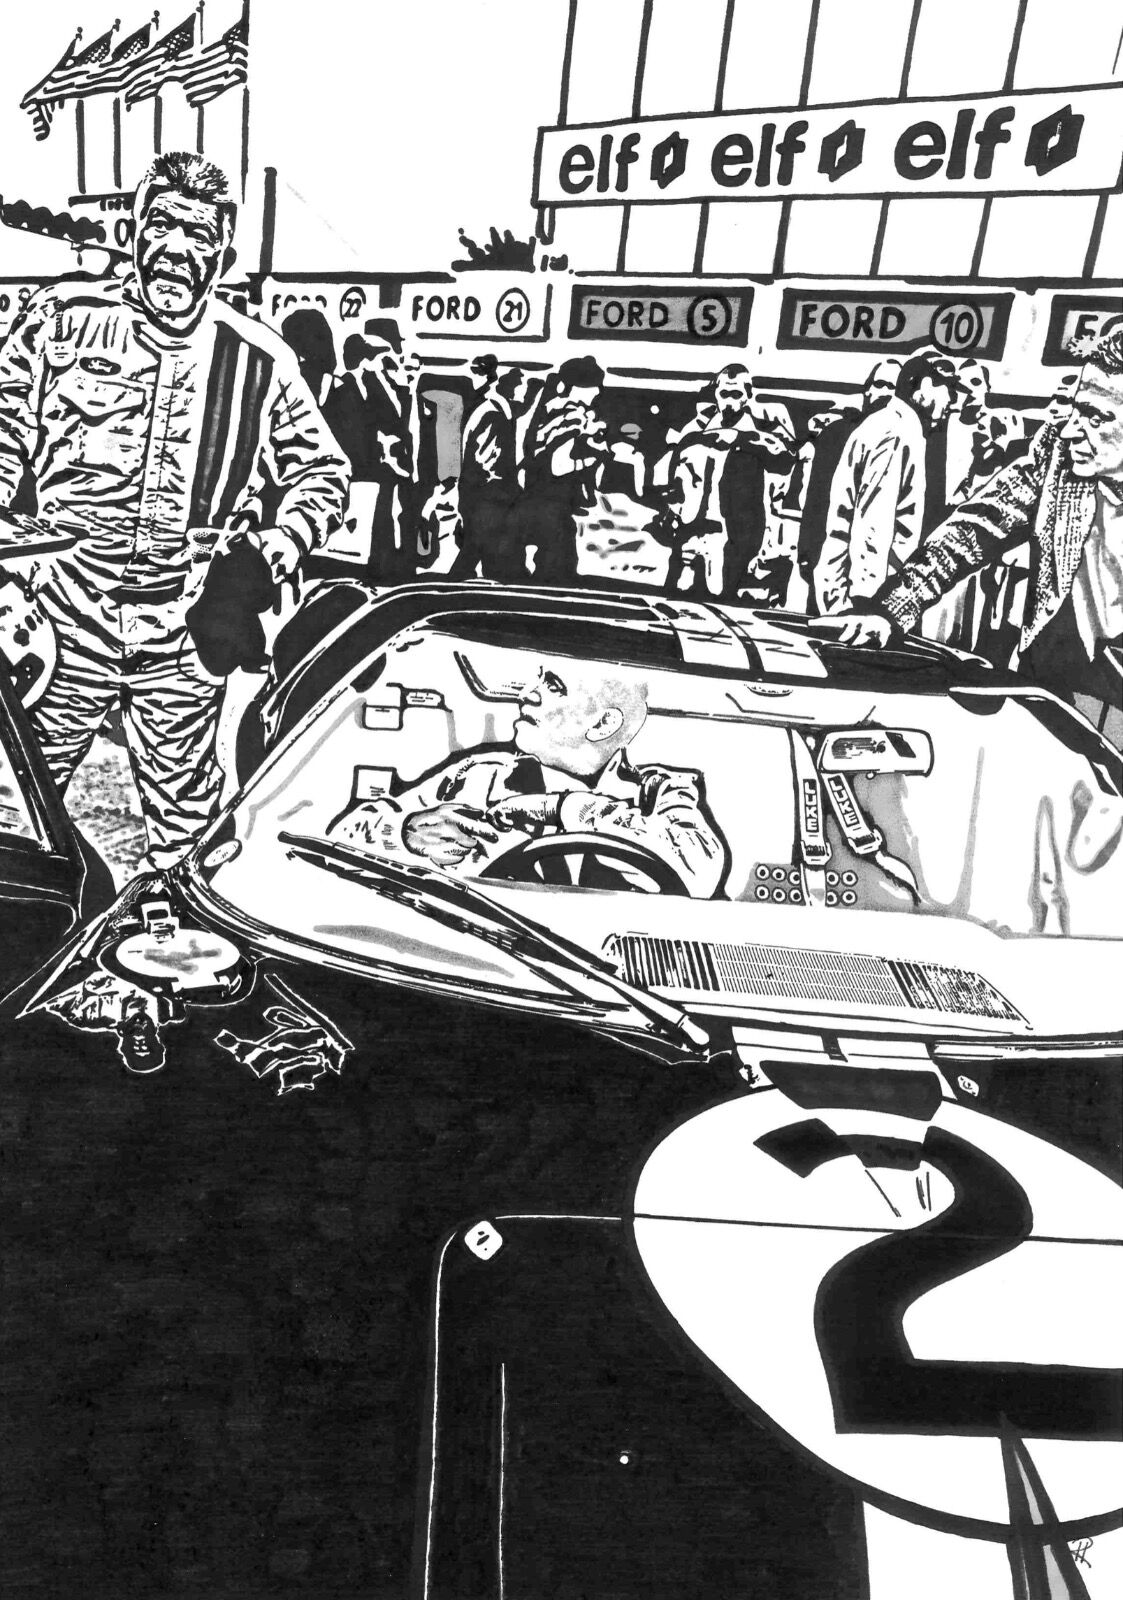 Ford GT40 No.2 - The 1966 Le Mans Winner (Size A3)